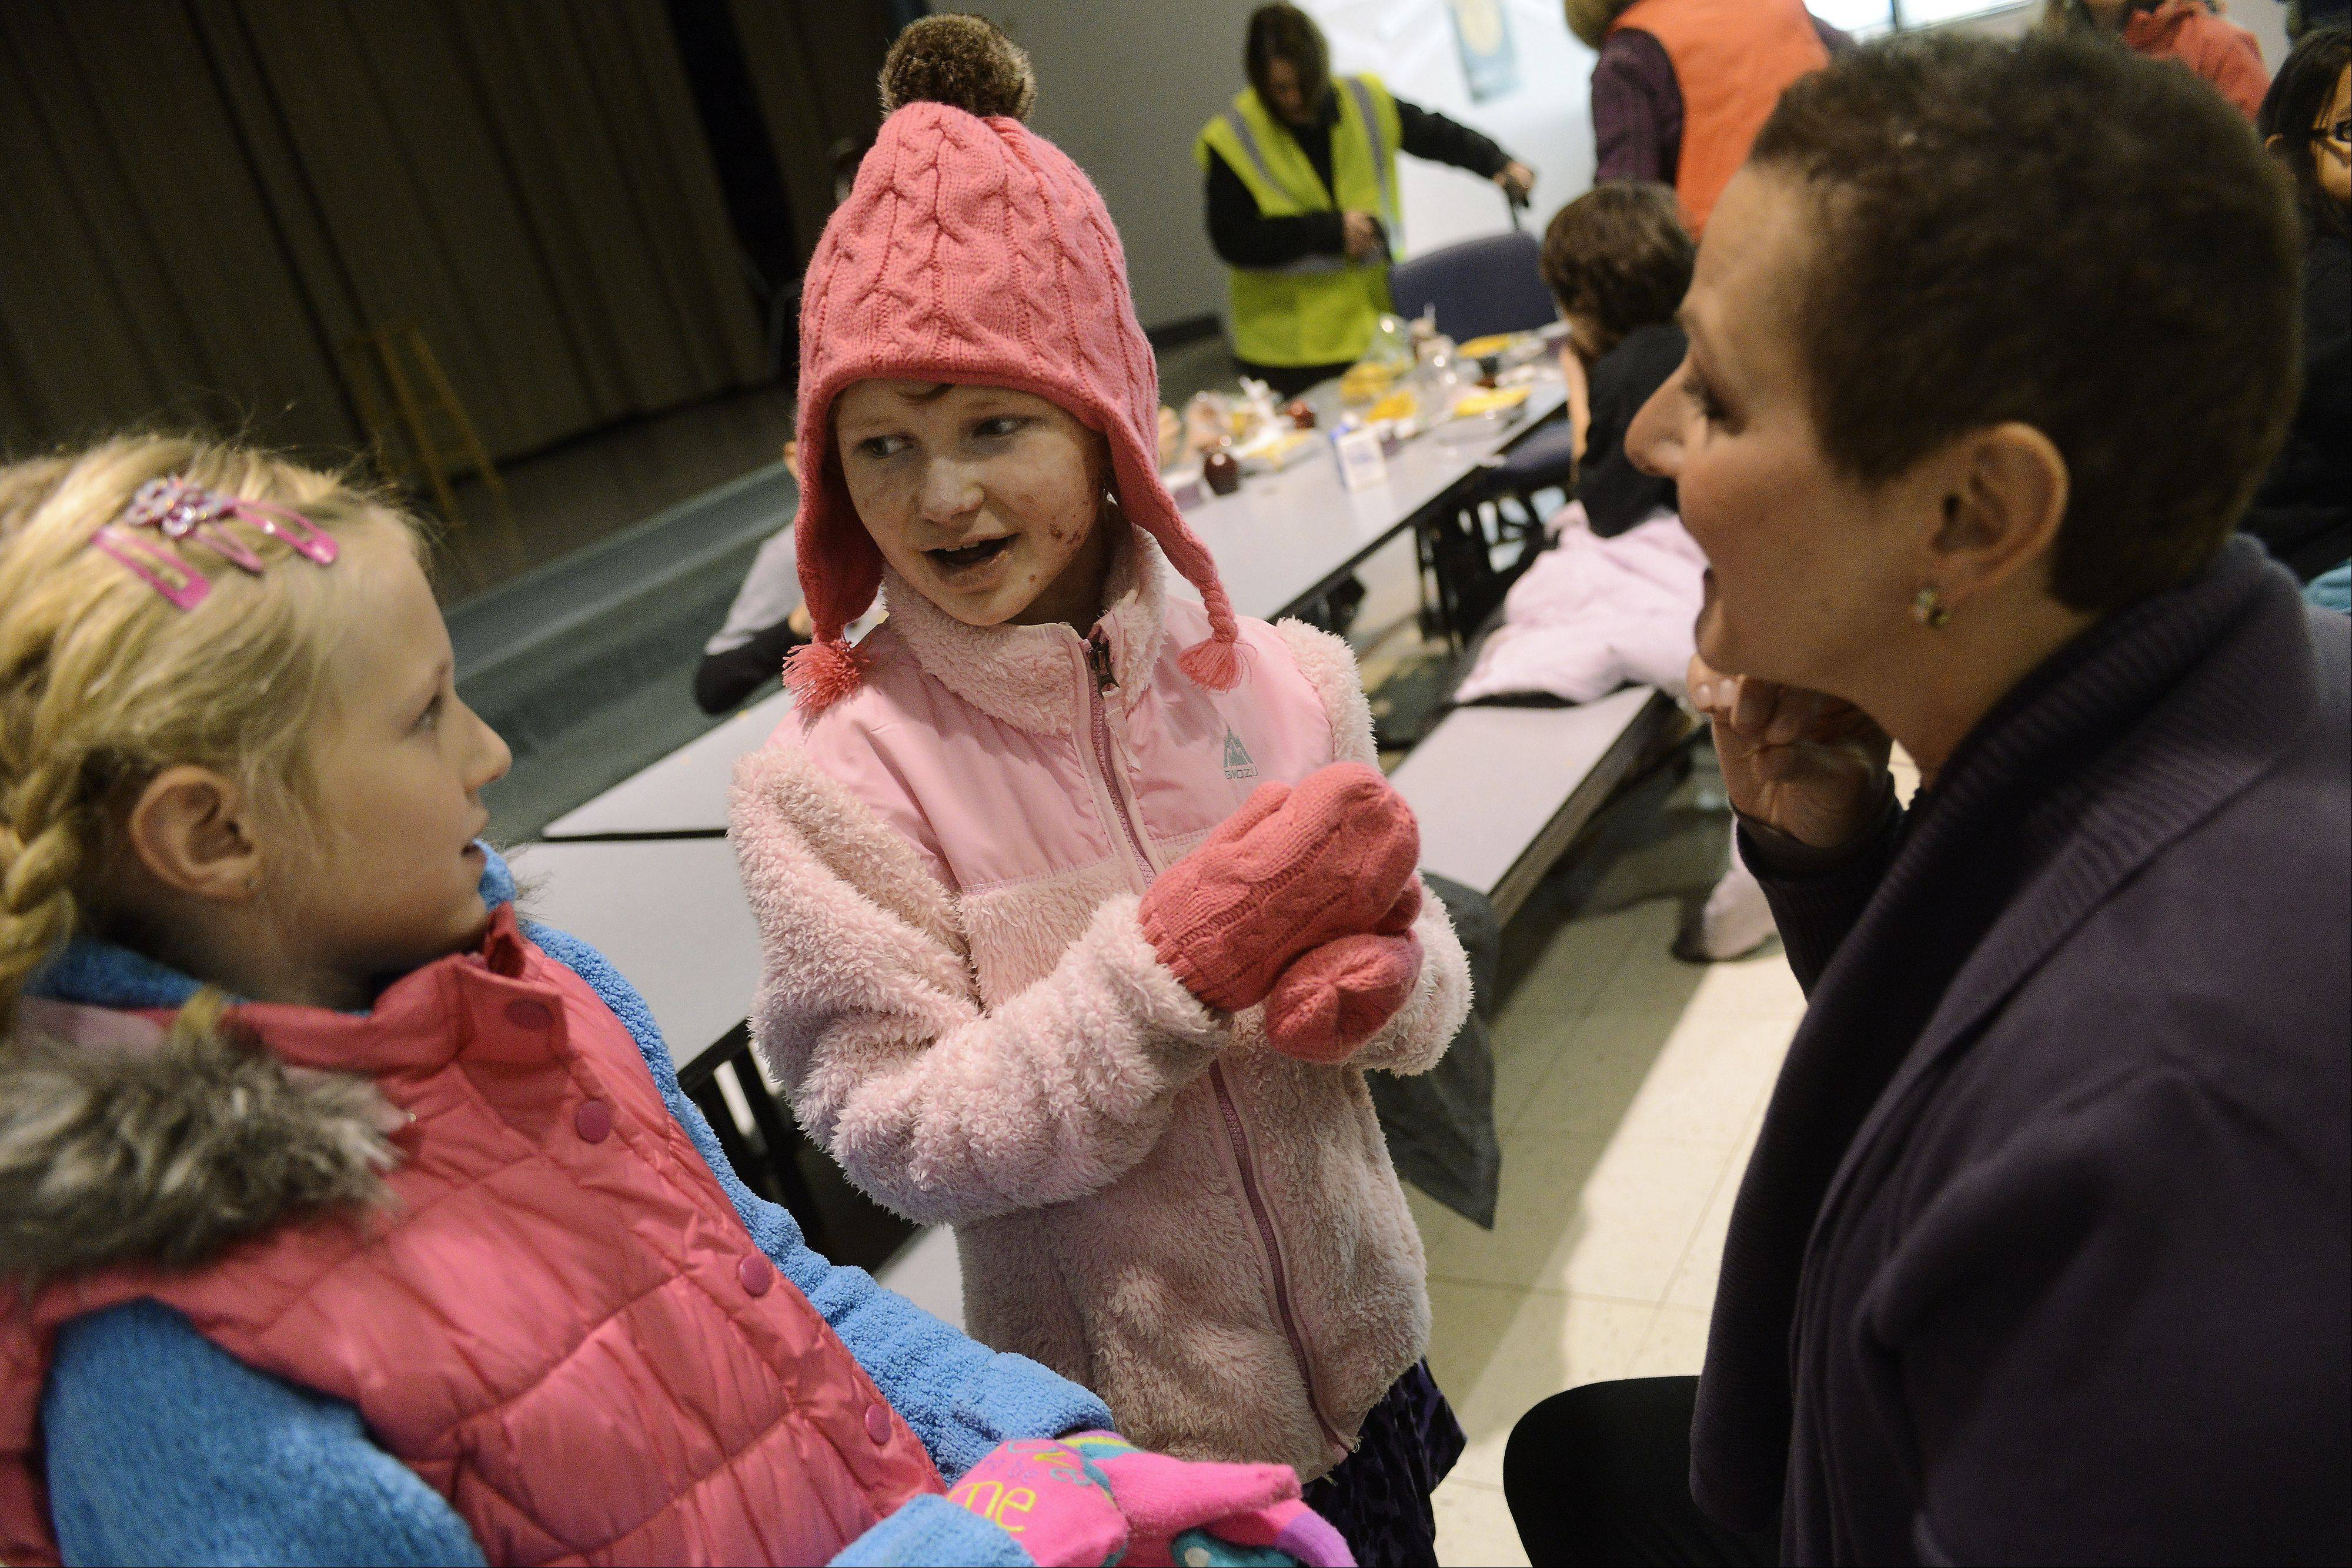 Deciding to hit the swings first, Caroline Provost, center, chats with friend Cece Gray and one-on-one program assistant Michelle Whiteside at Kimball Hill School in Rolling Meadows.